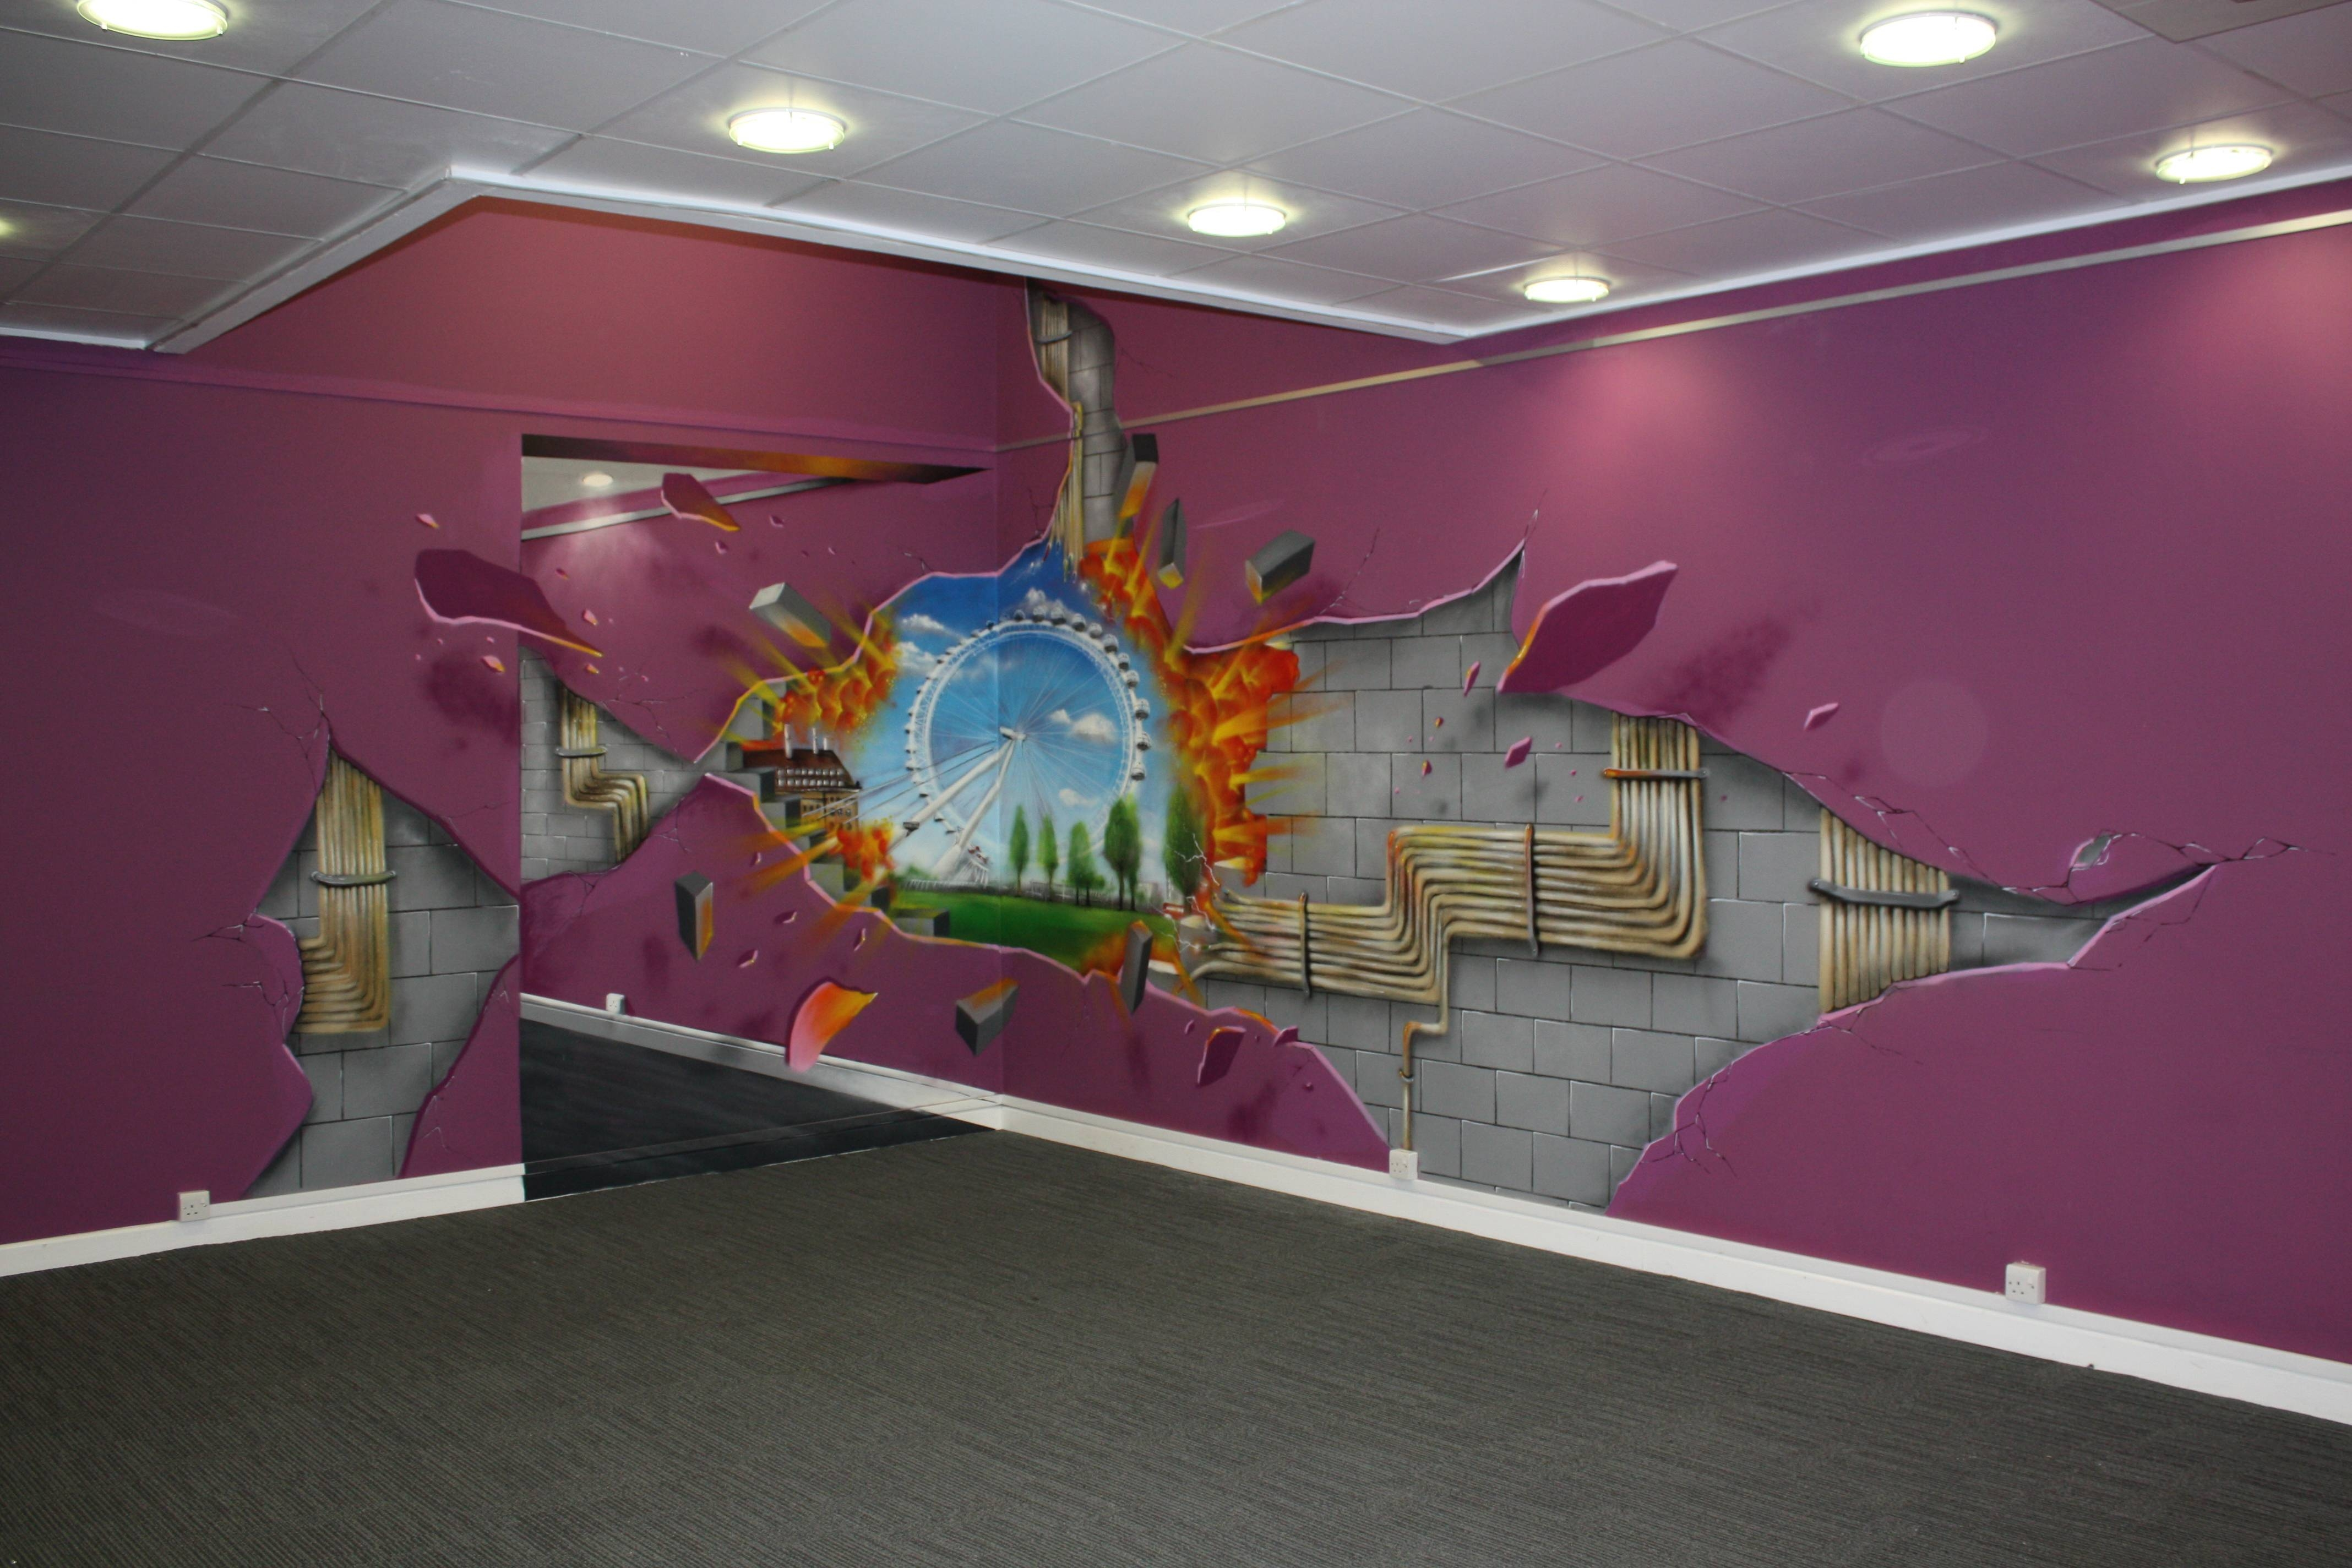 Stunts Illusion Art Can Also Created Walls – Dma Homes | #4737 Inside Most Recently Released 3D Wall Art Illusions (View 19 of 20)